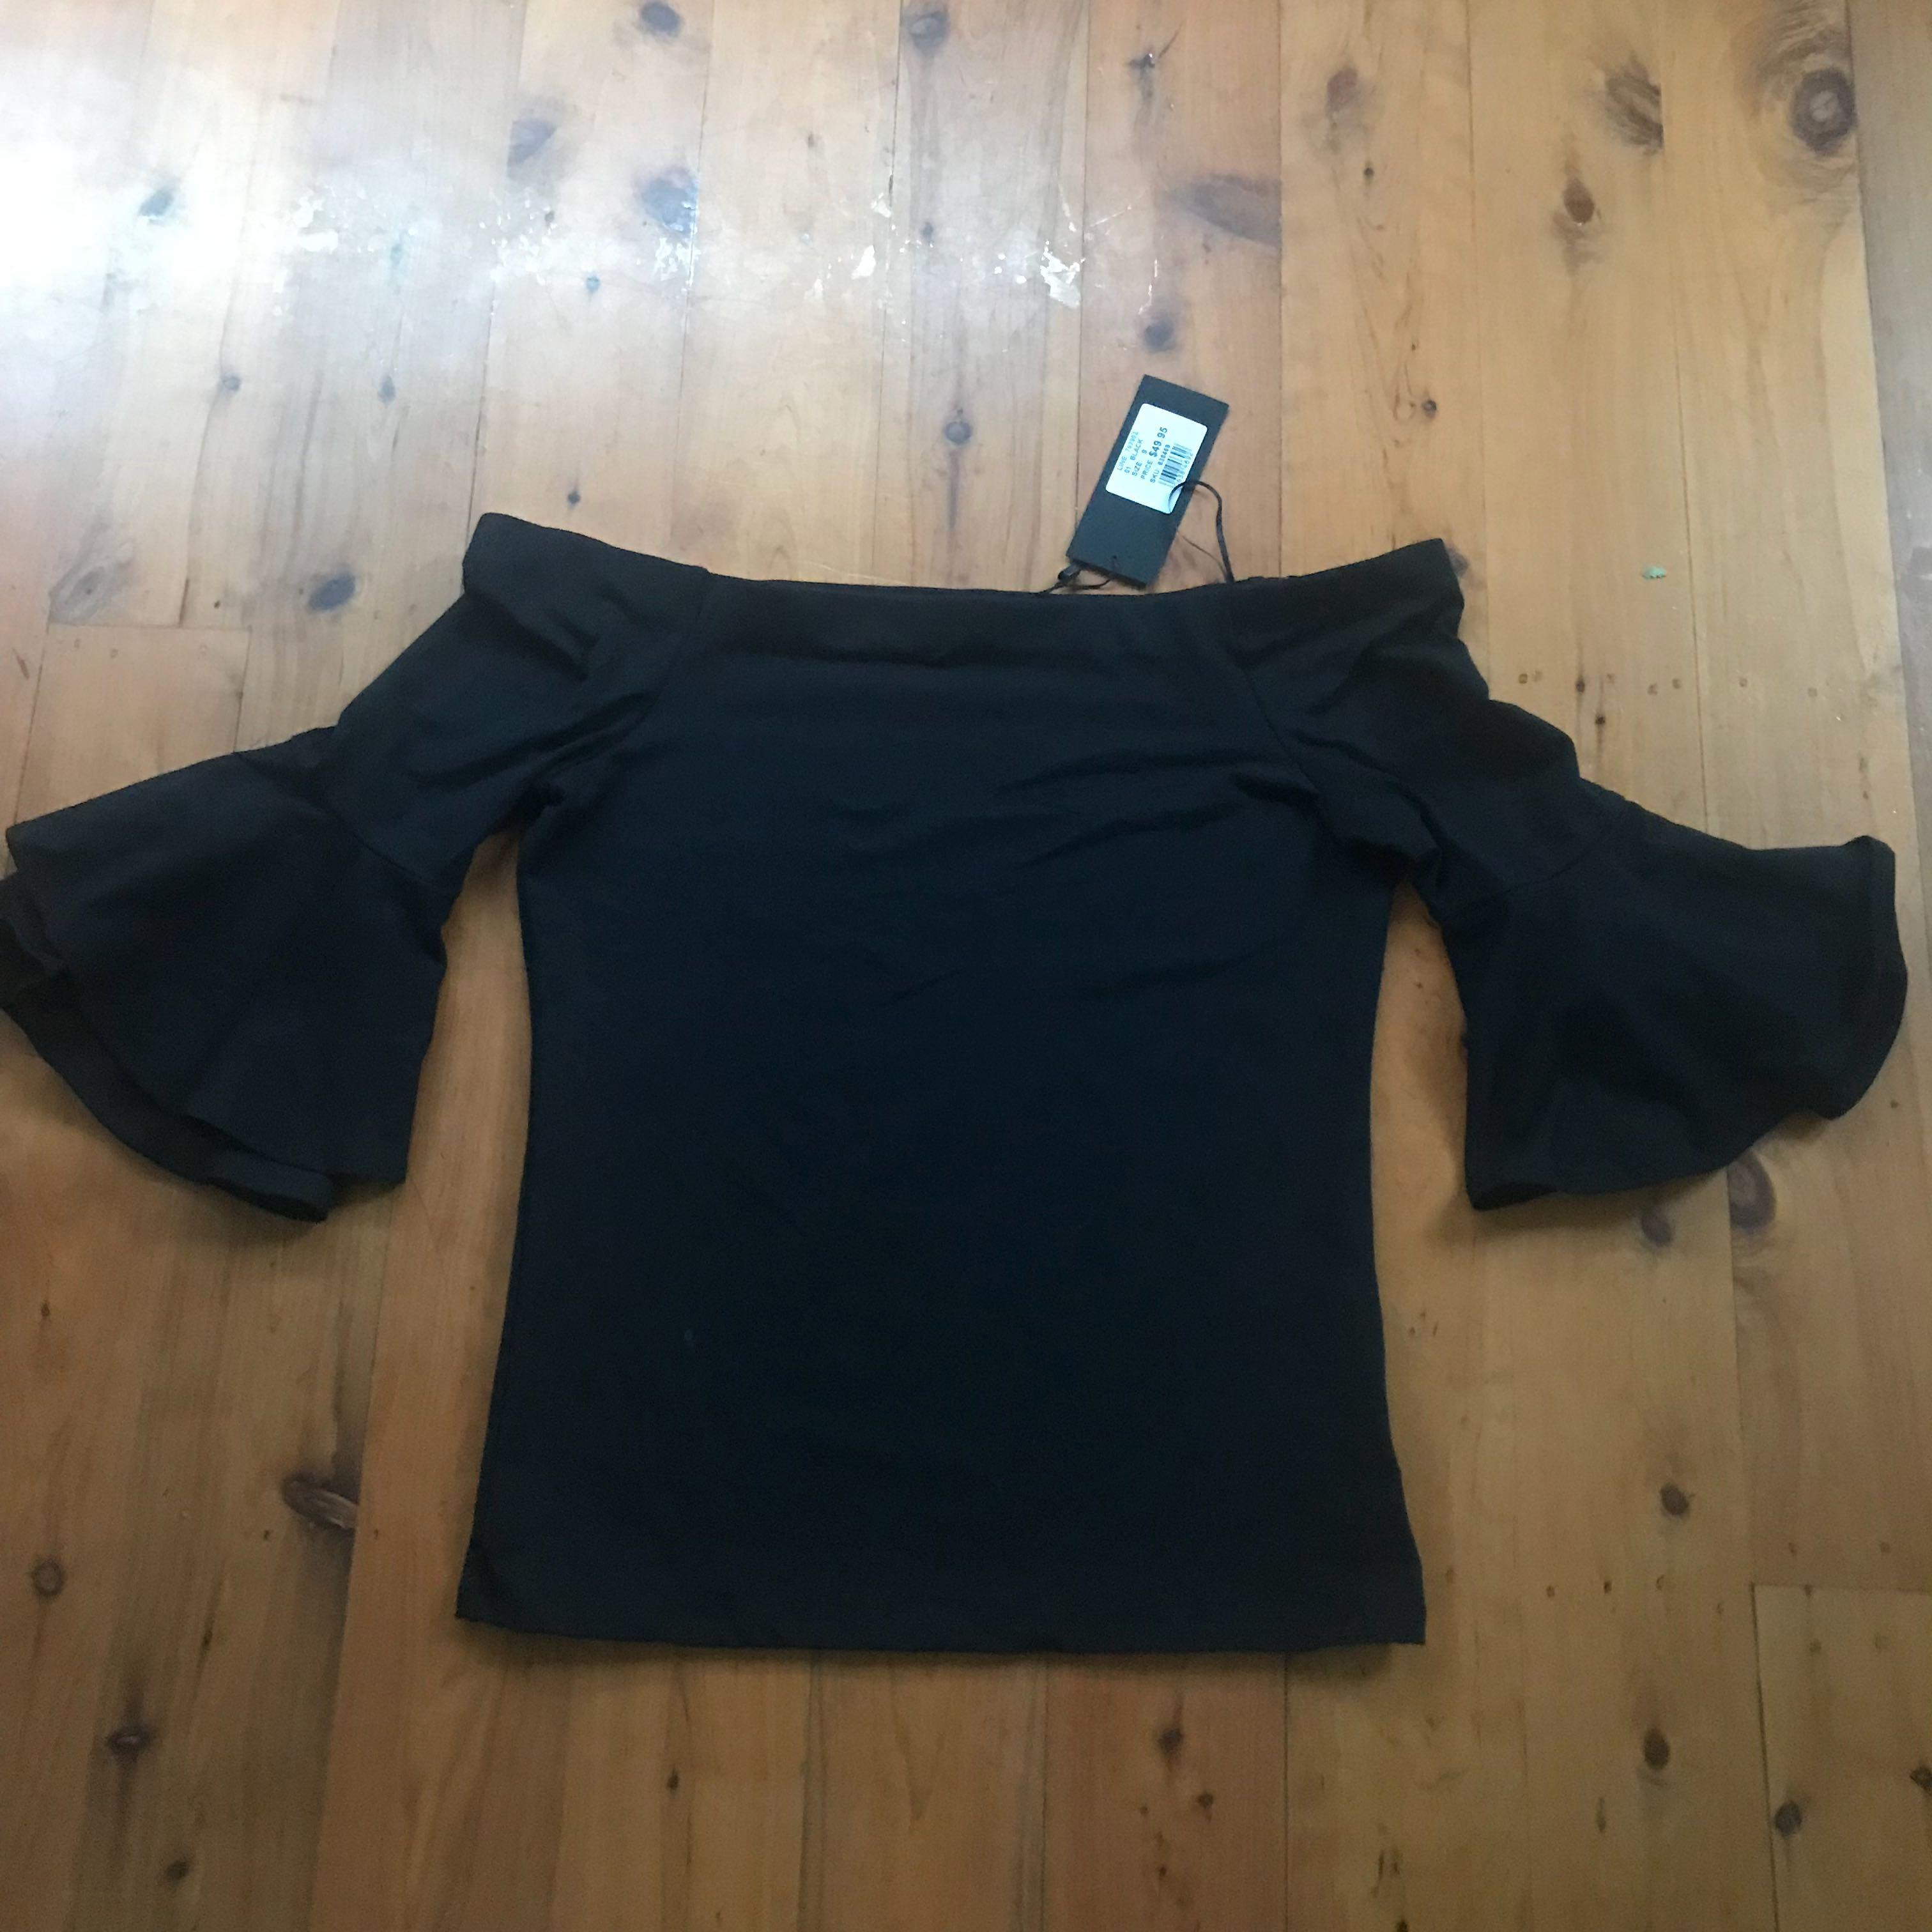 Bnwt women's Pittman's black stretch off the shoulder top flared sleeves size s RRP $49.95